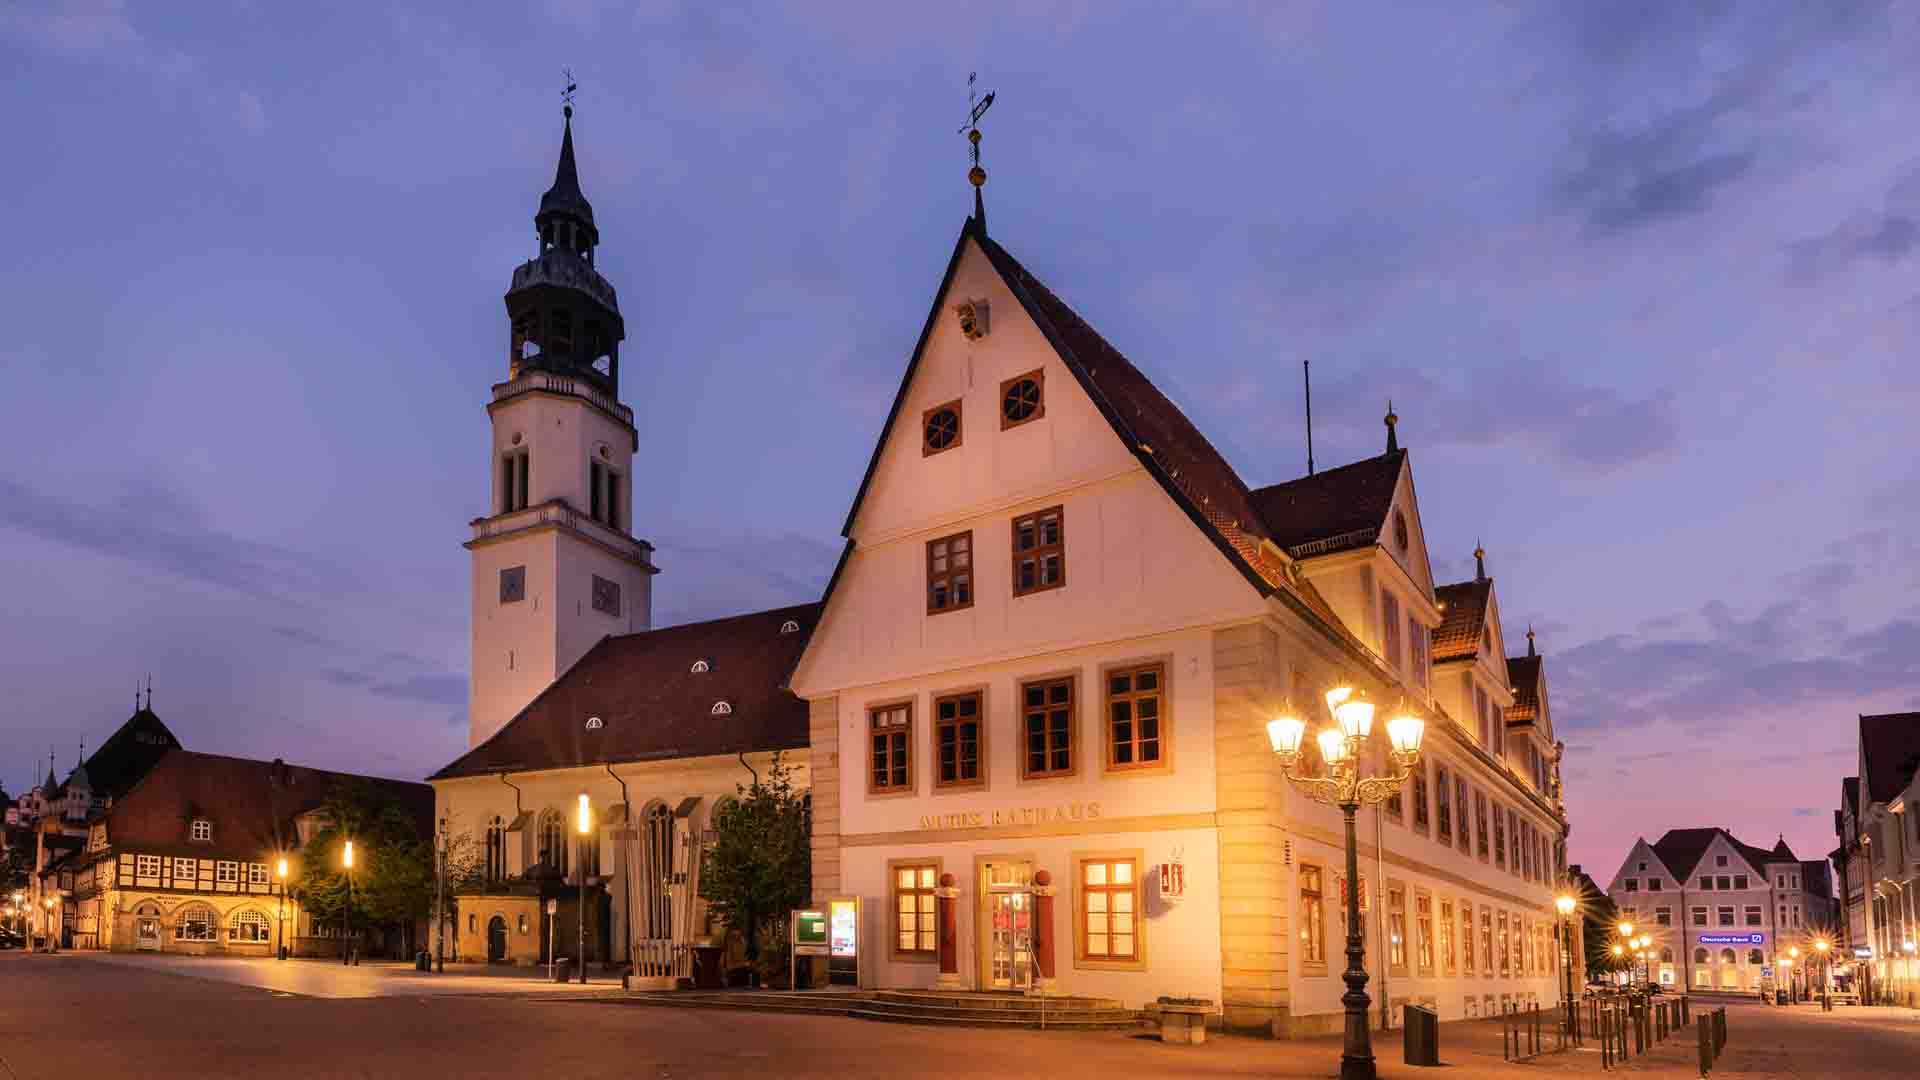 Altes Rathaus in Celle am Abend